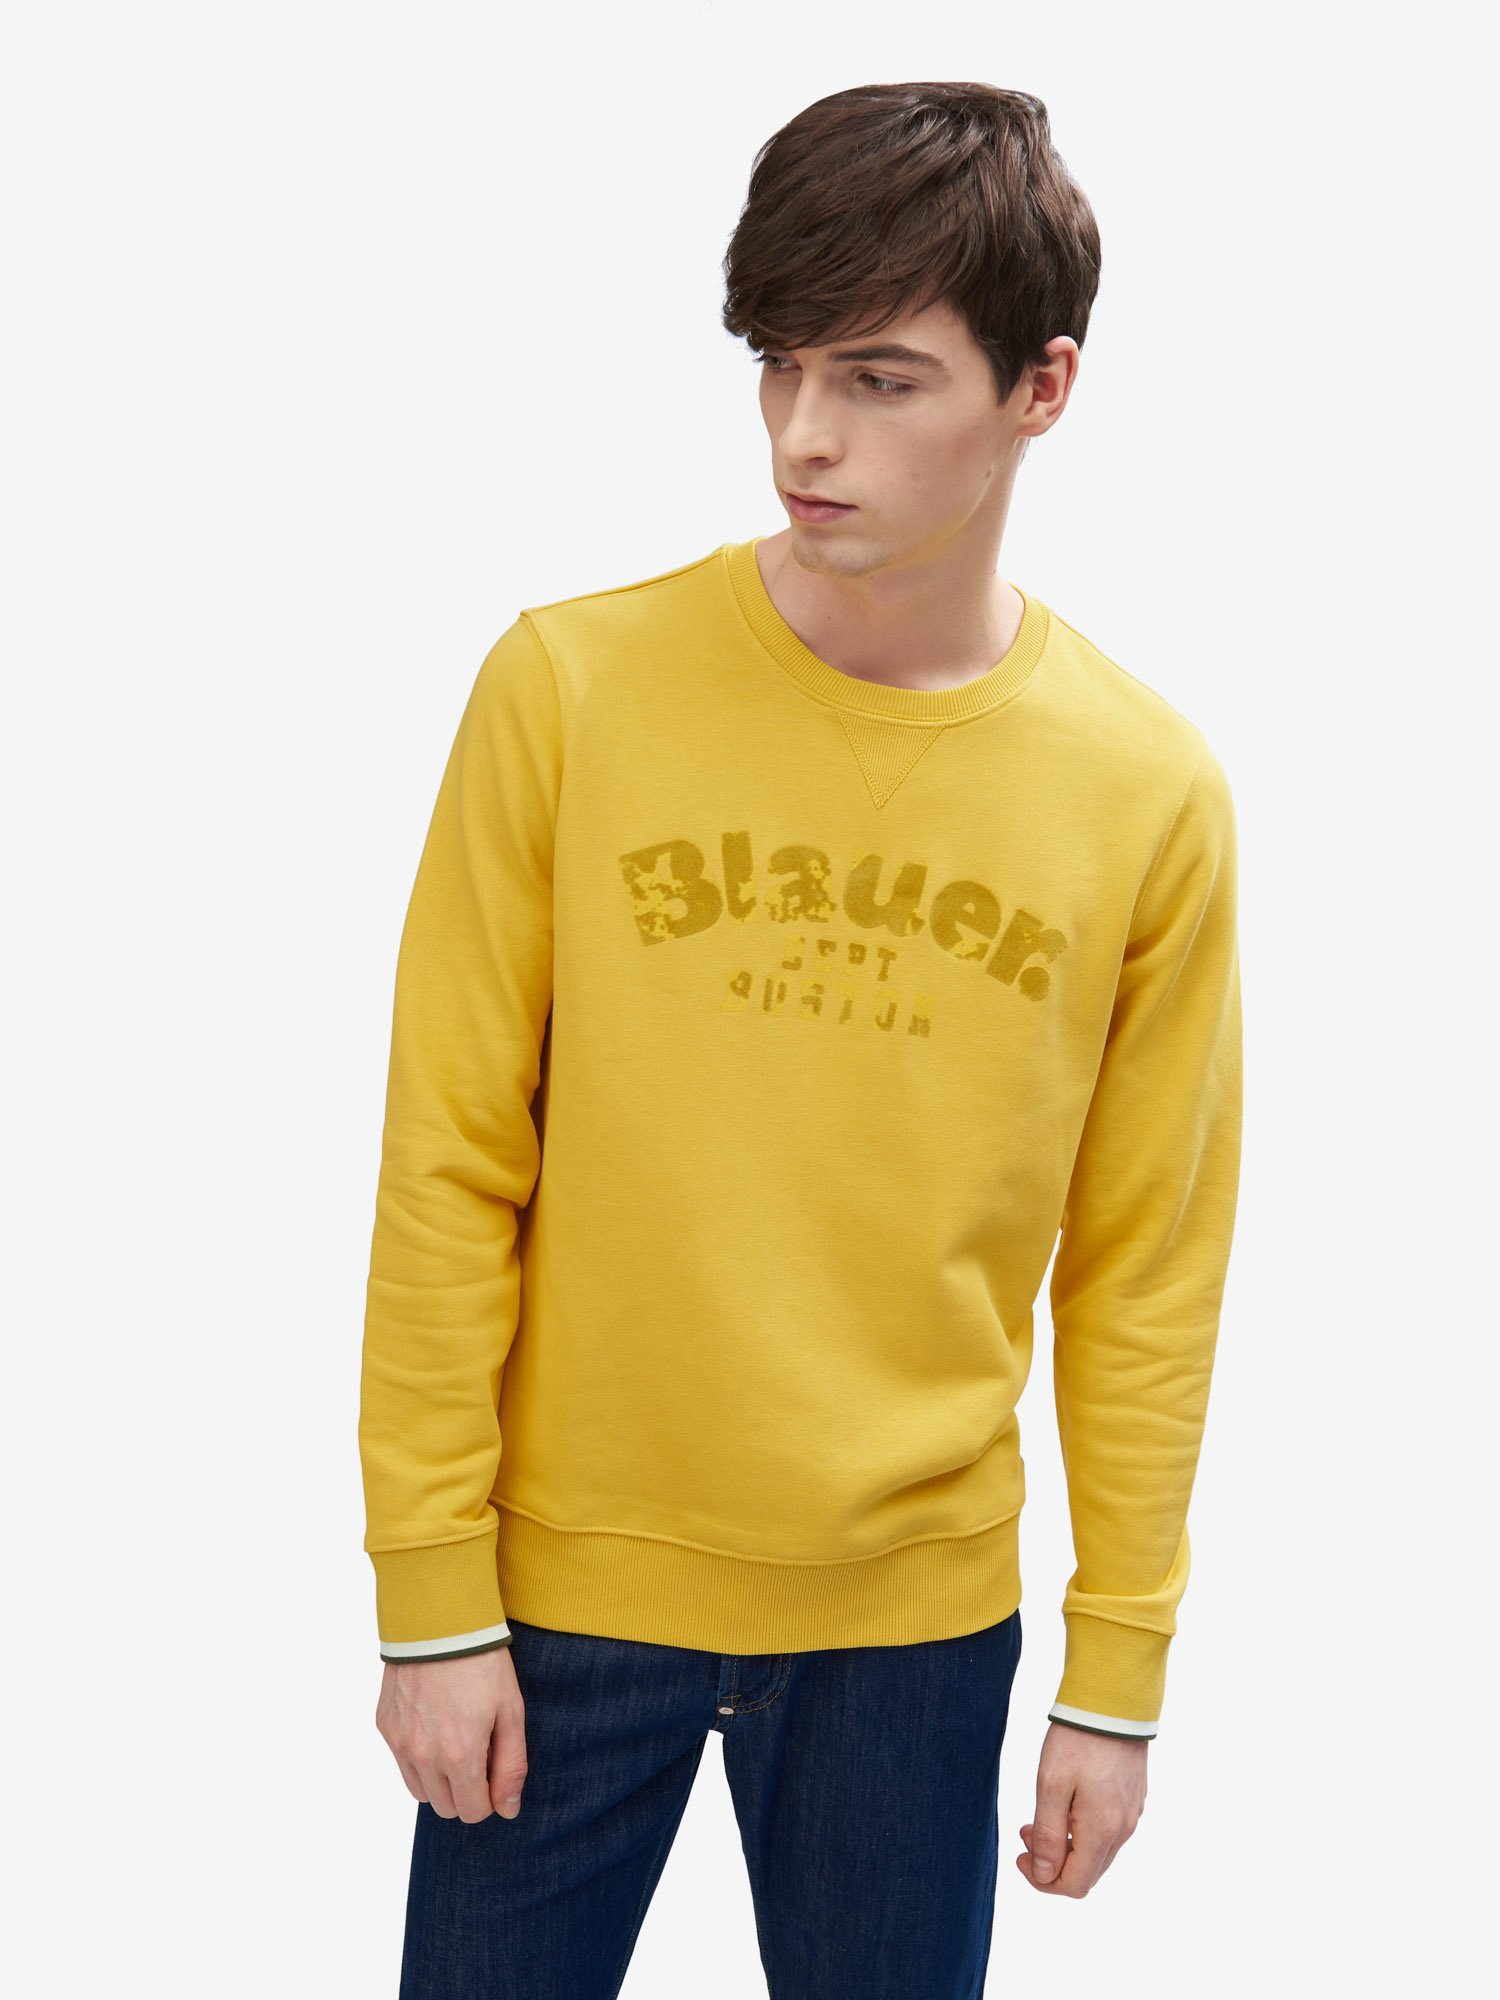 BASIC CREW NECK SWEATSHIRT - Blauer